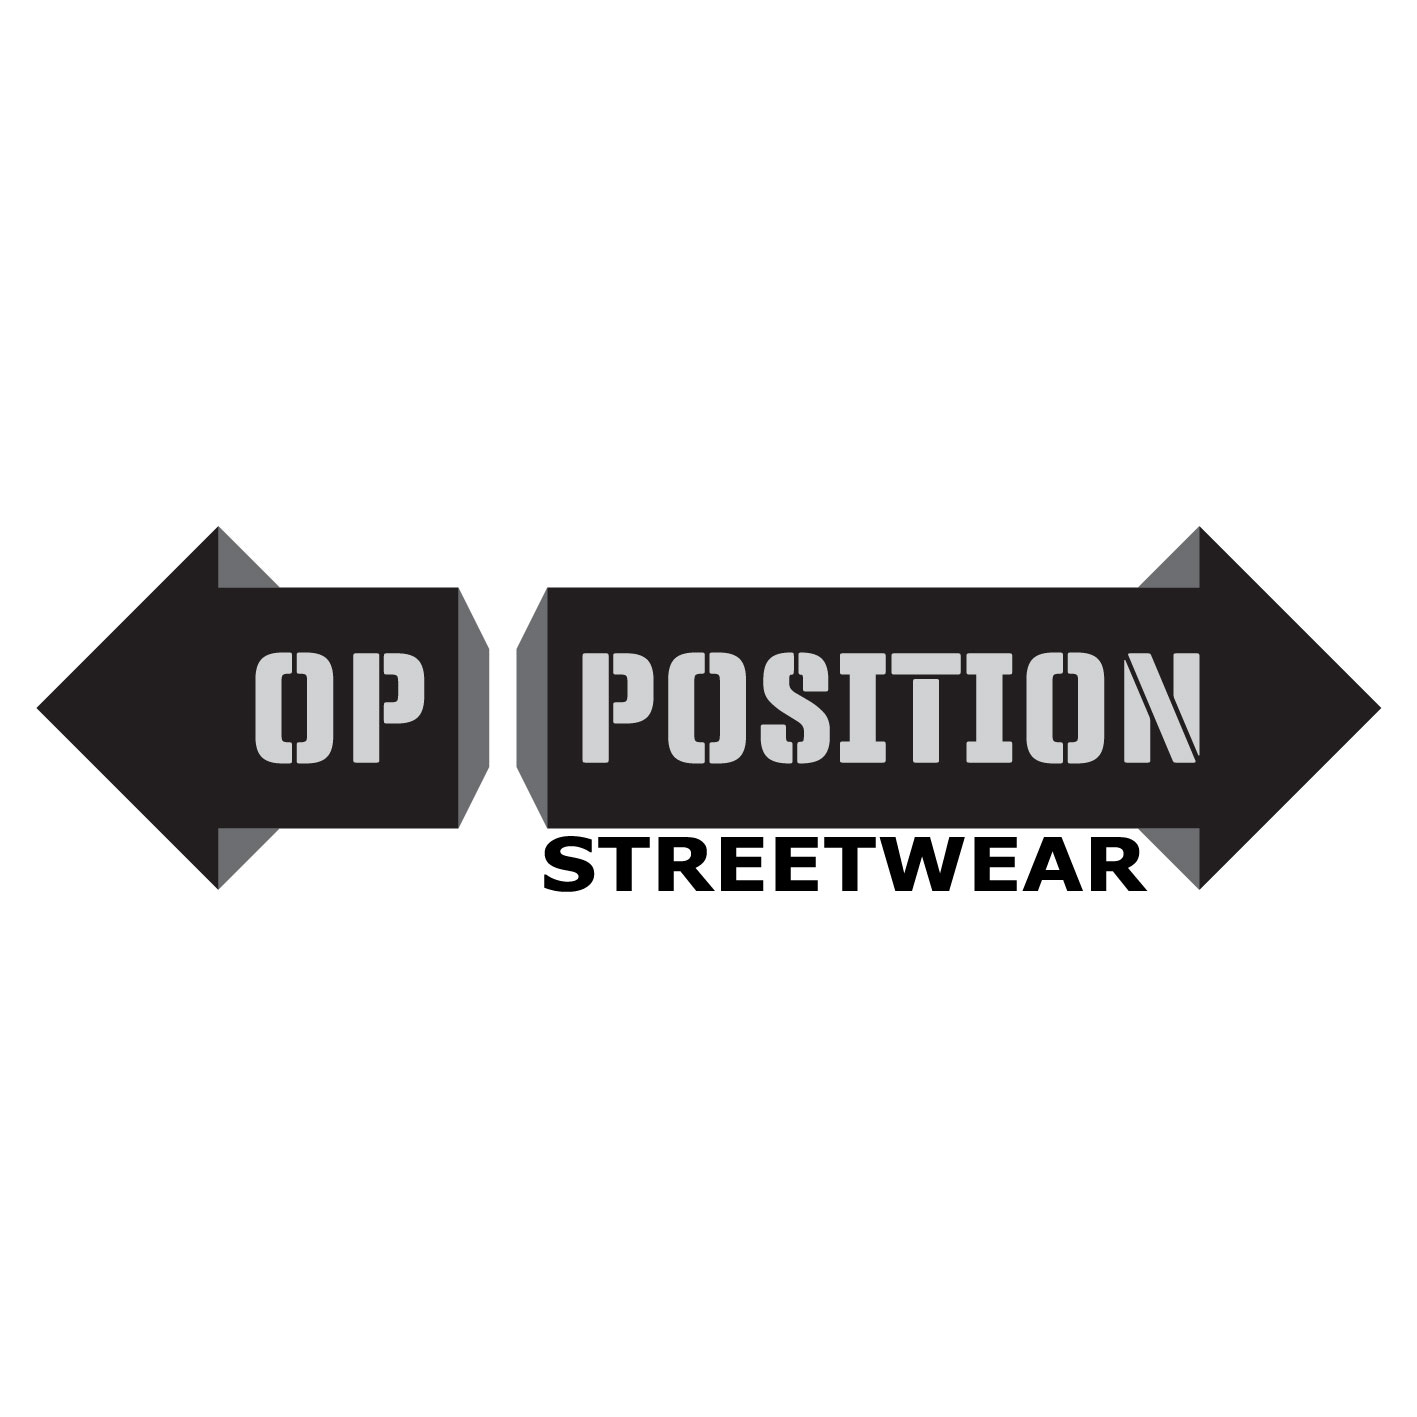 OPPOSITION Street Wear LOGO